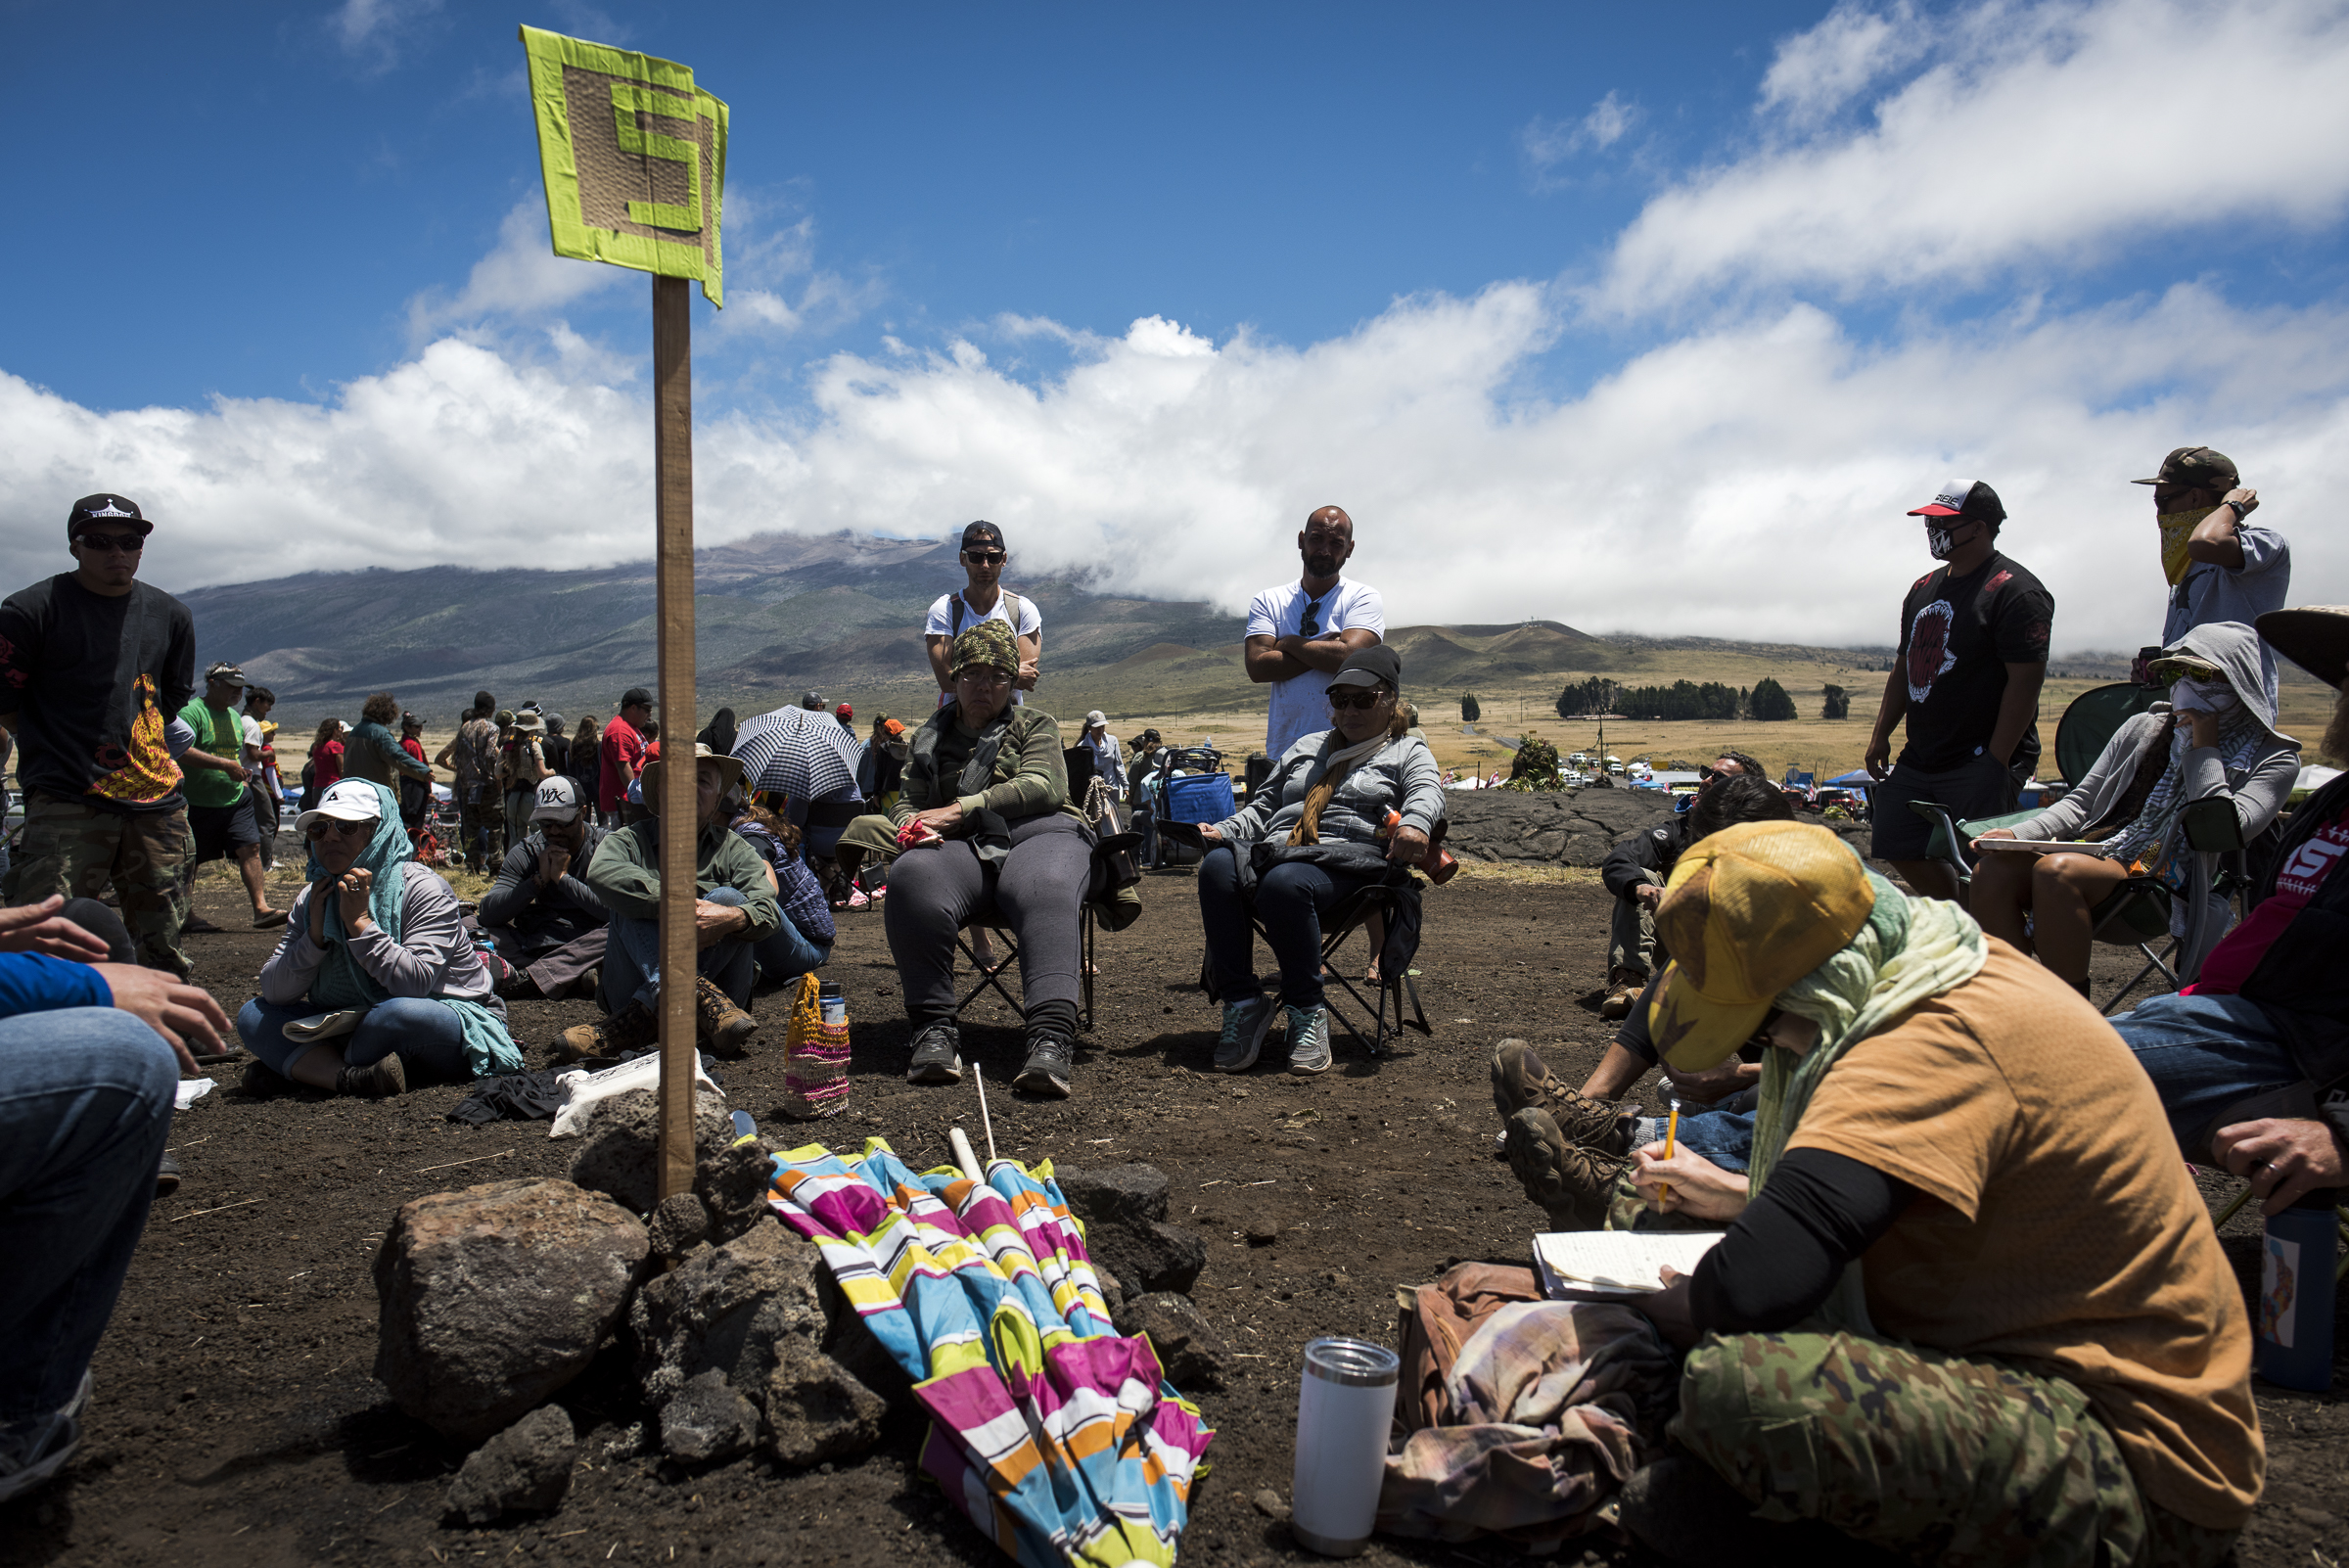 <p>Morning classes meet at Pu'uhuluhulu, where hundreds of opponents of the planned Thirty Meter Telescope have been camping out since July 15. Class offerings include the Hawaiian language and hula.</p>